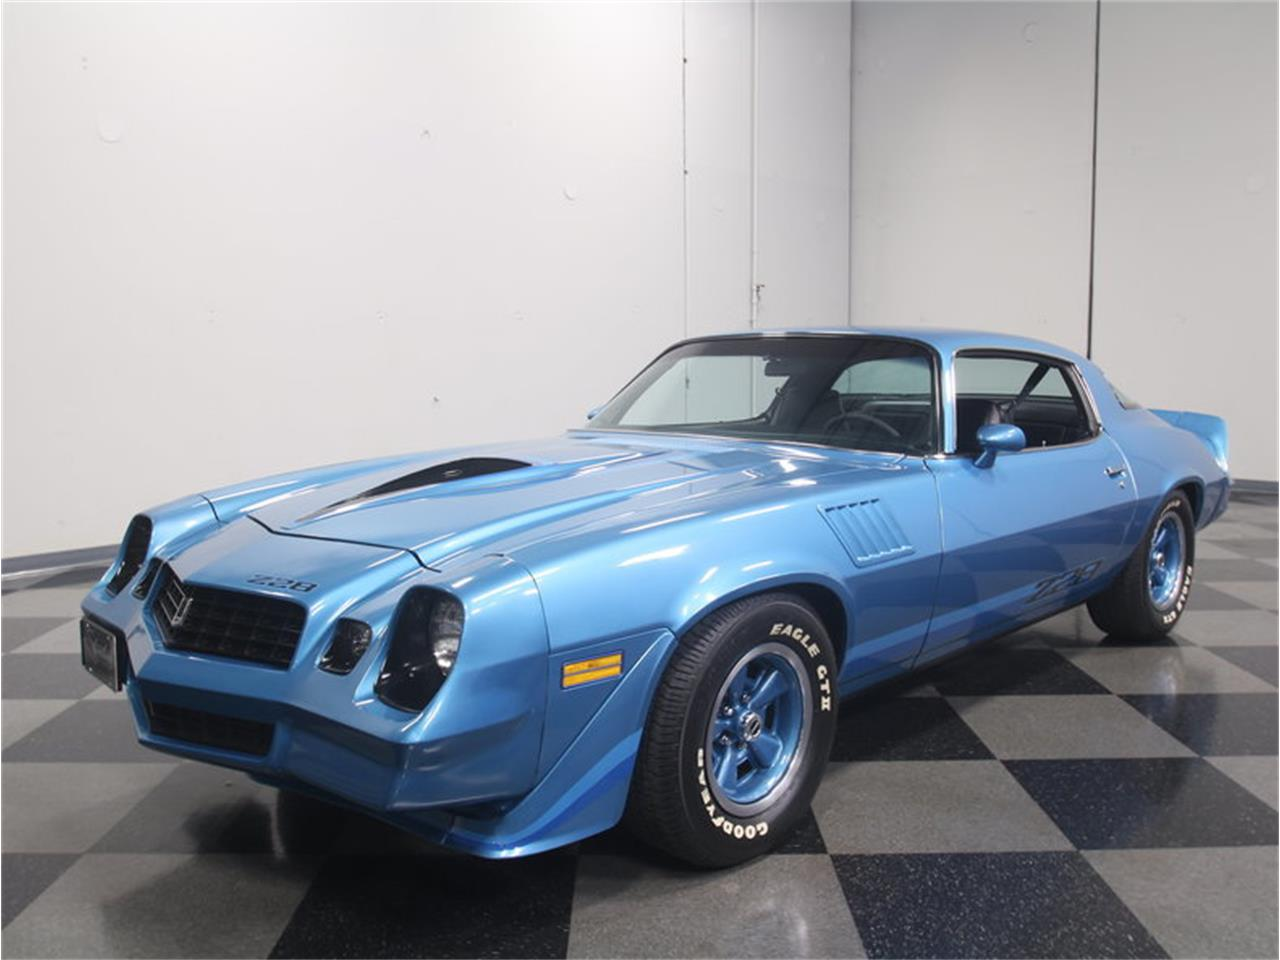 Large Picture of '79 Chevrolet Camaro Z28 located in Lithia Springs Georgia - $34,995.00 - MO6L